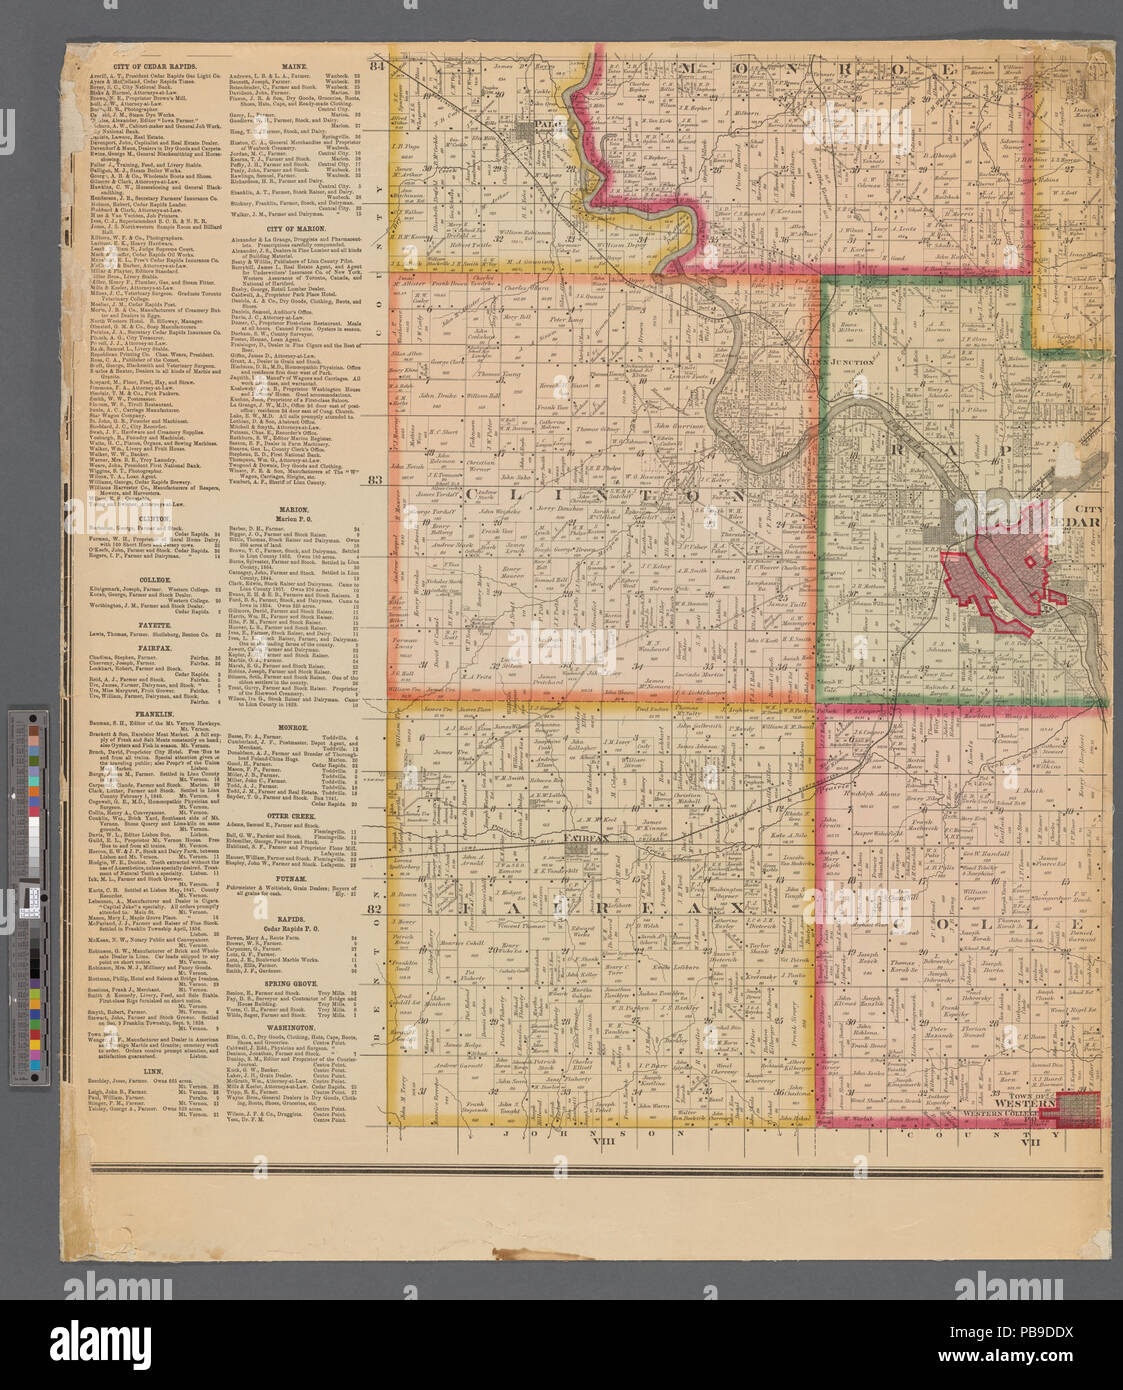 993 Map Of Linn County Iowa Nypl B11655881 5366943 Stock Photo